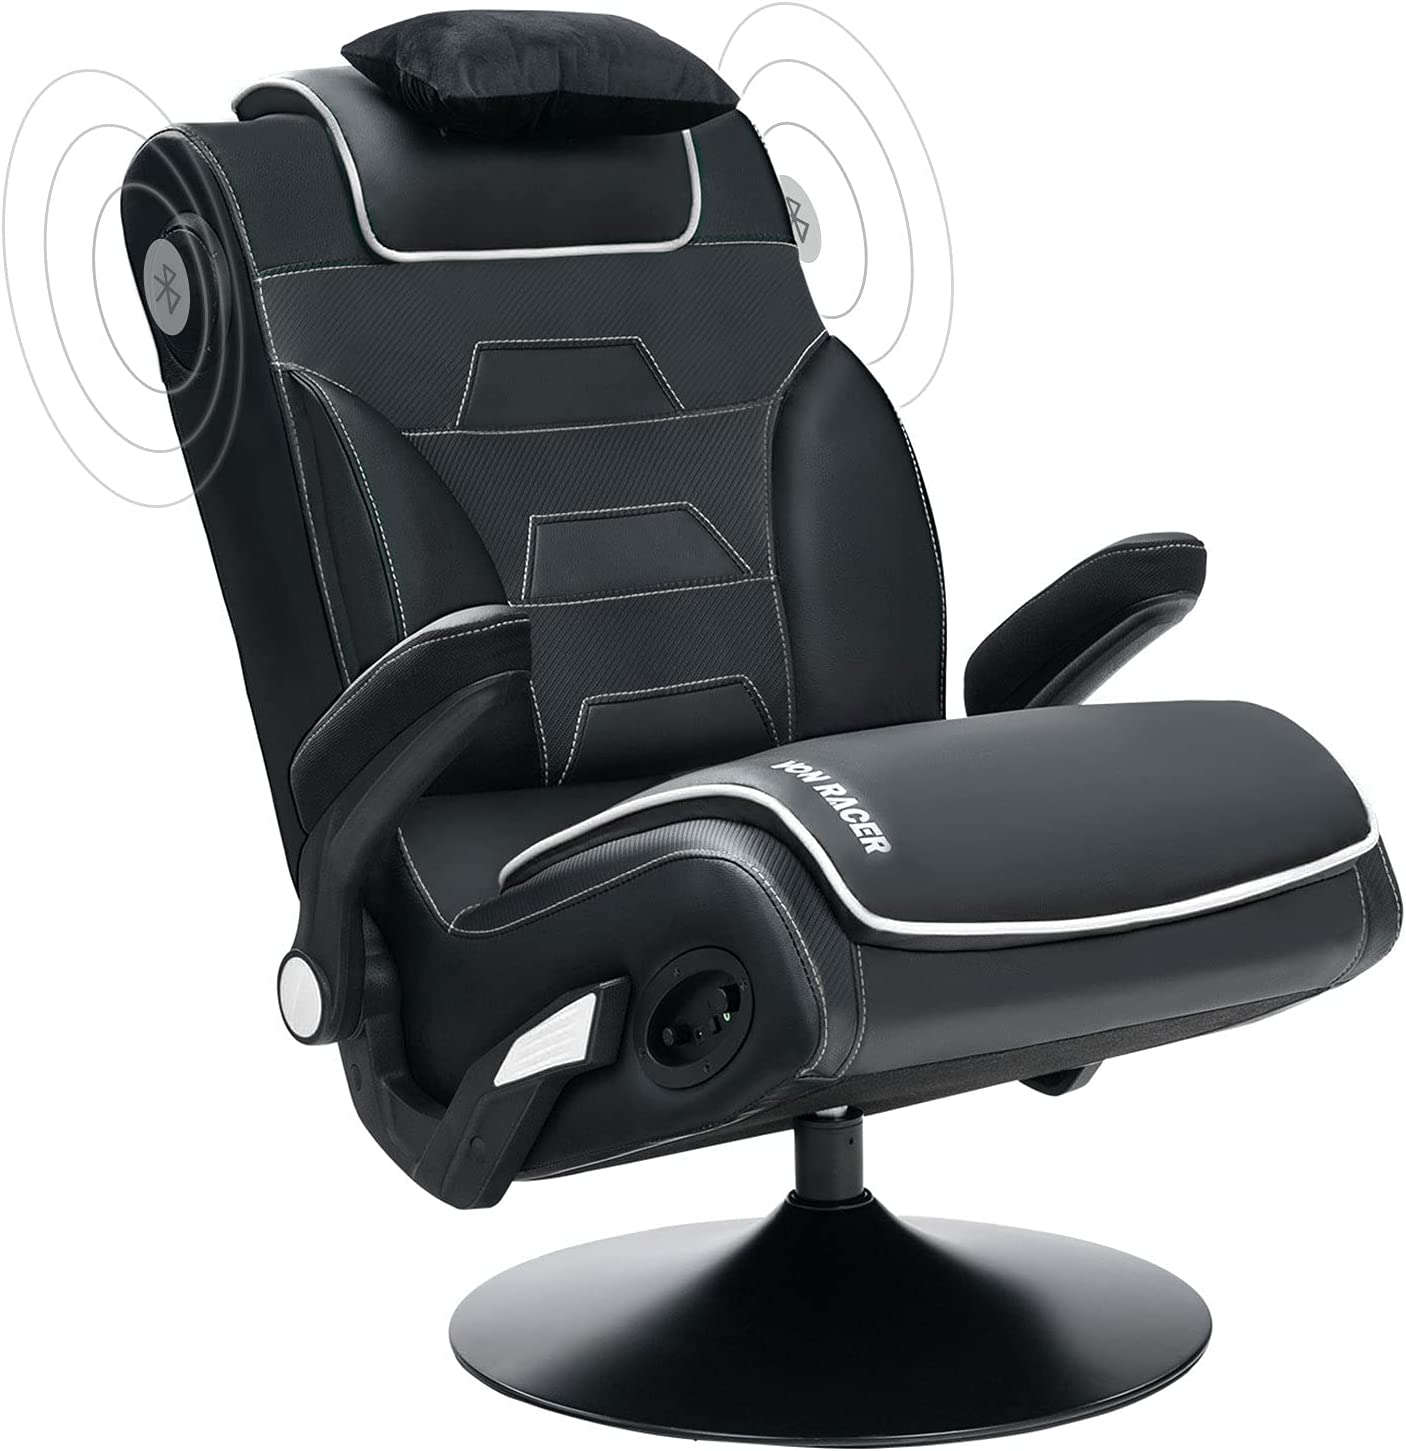 VON RACER Gaming Chair with Video Rocking Bluetooth Gam Speakers Safety and trust Excellent